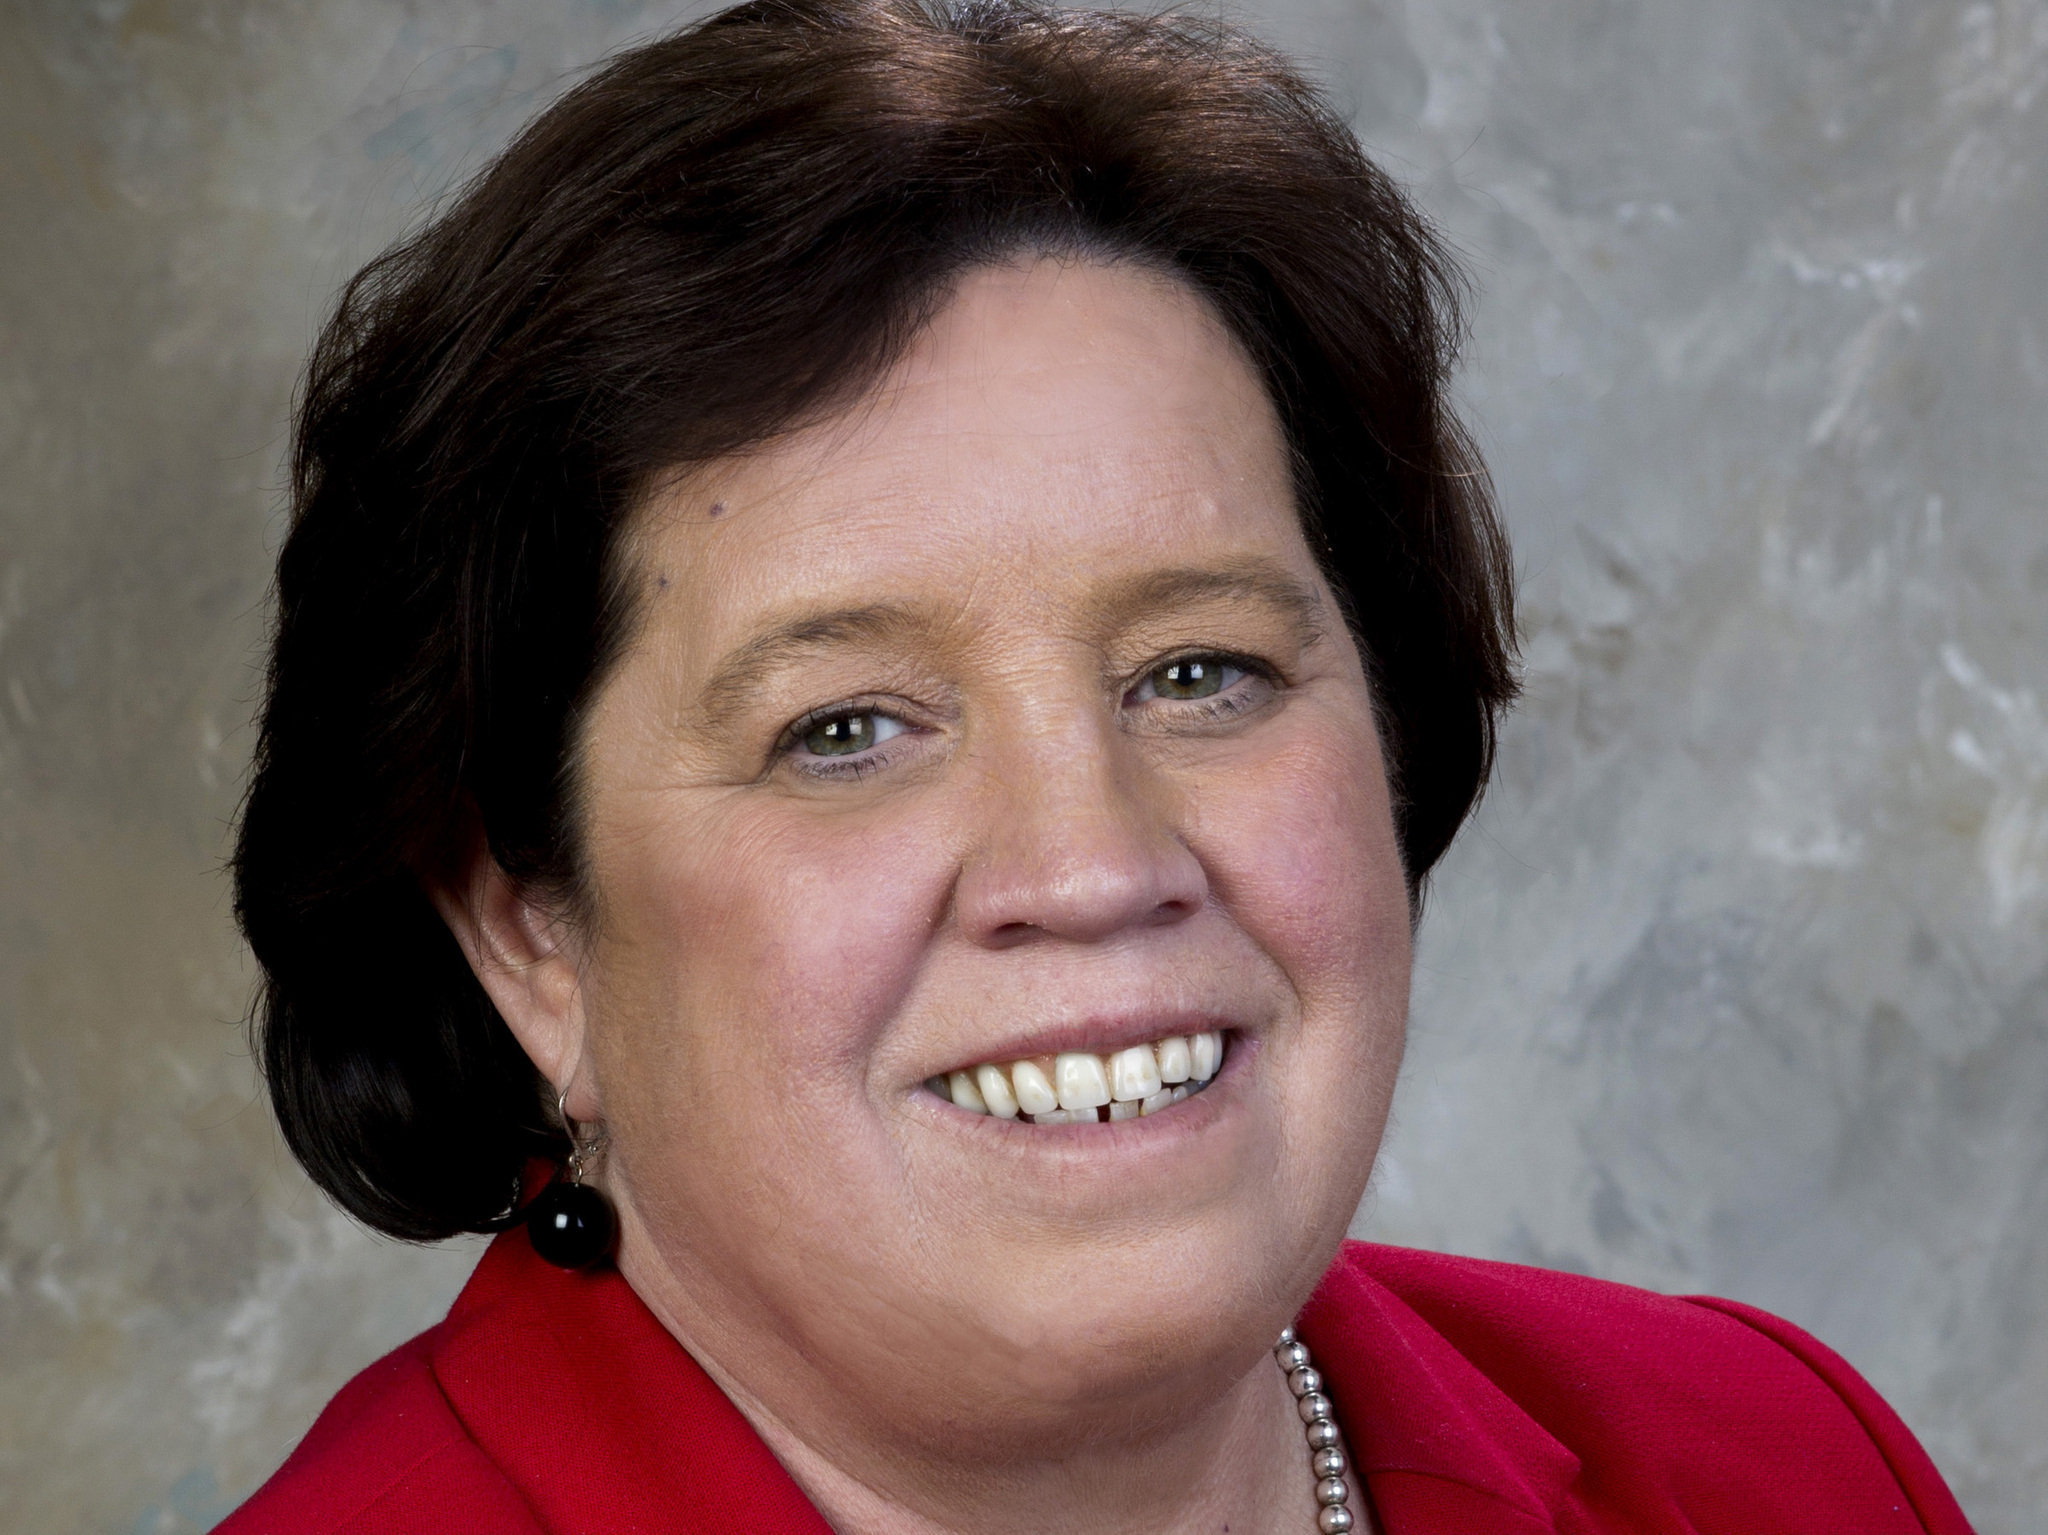 Pa. Senate confirmation hearing set for Tuesday for Liquor Control Board nominee Mary Isenhour